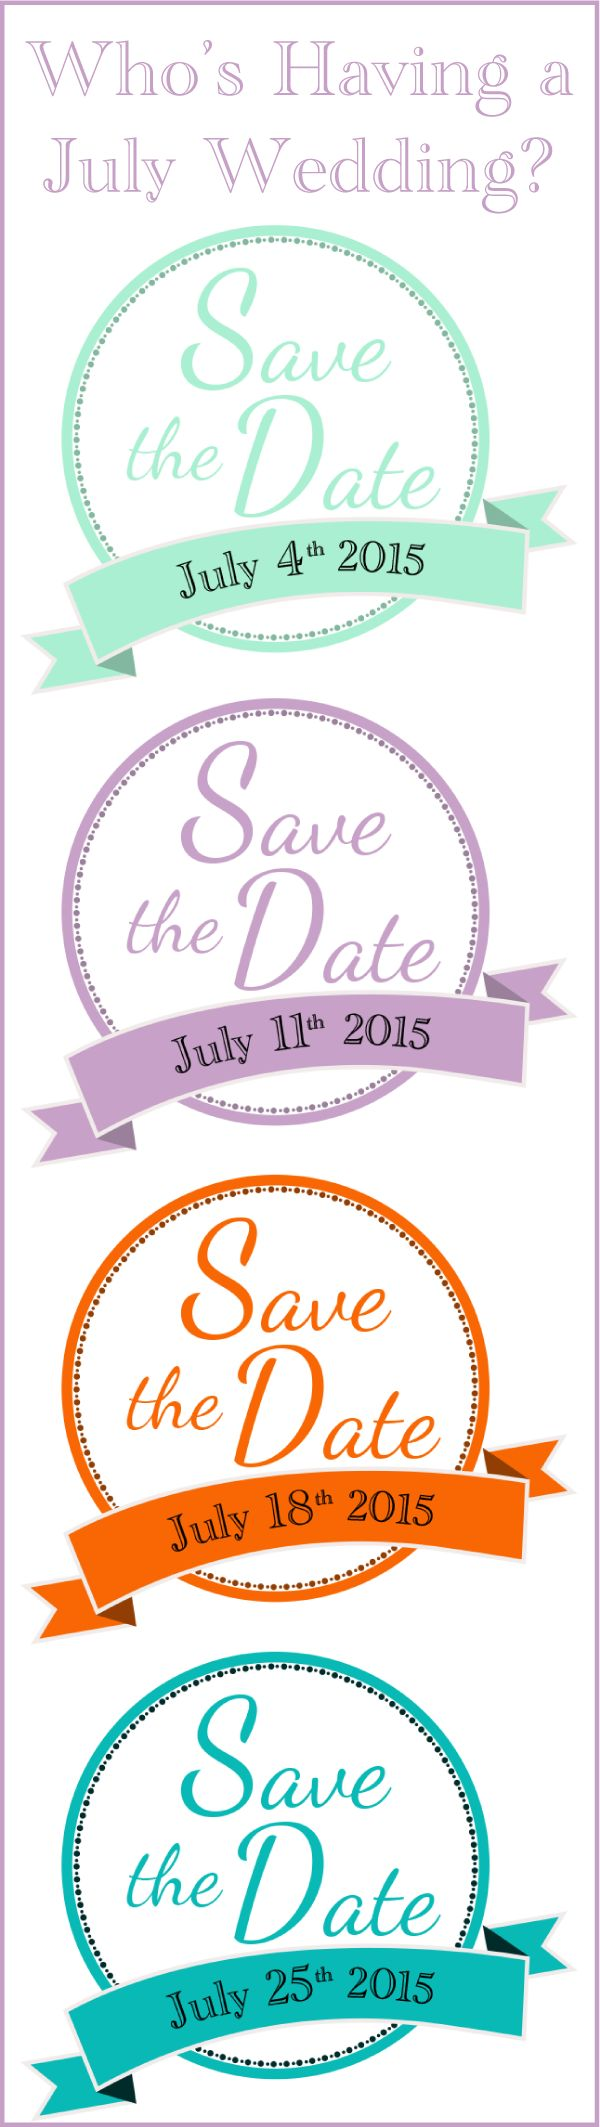 How Great Are These Save The Date Clipart Digital Downloads Just $3 At  #oliverink On